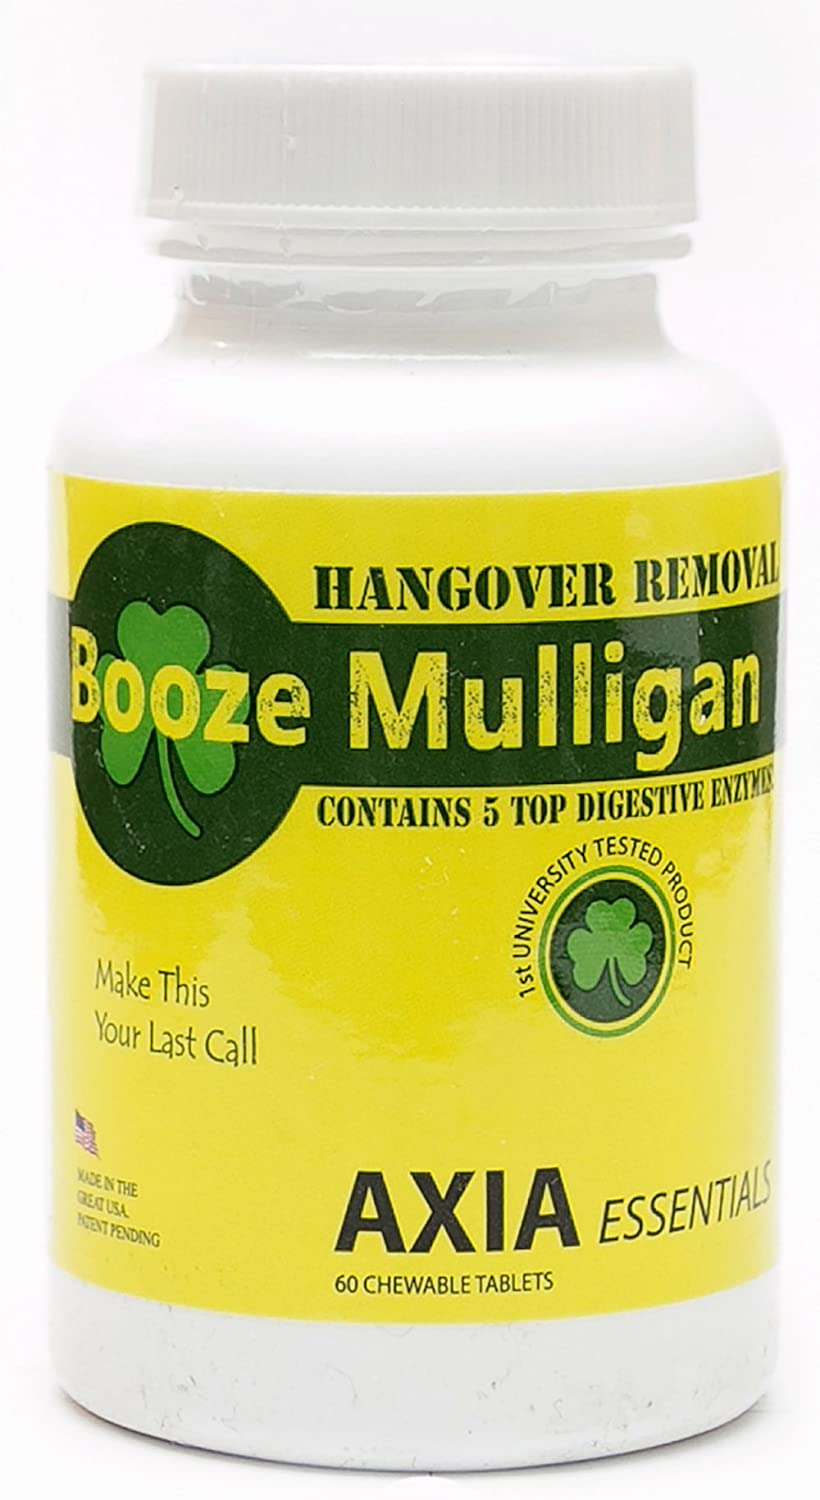 How to remove a hangover correctly and safely